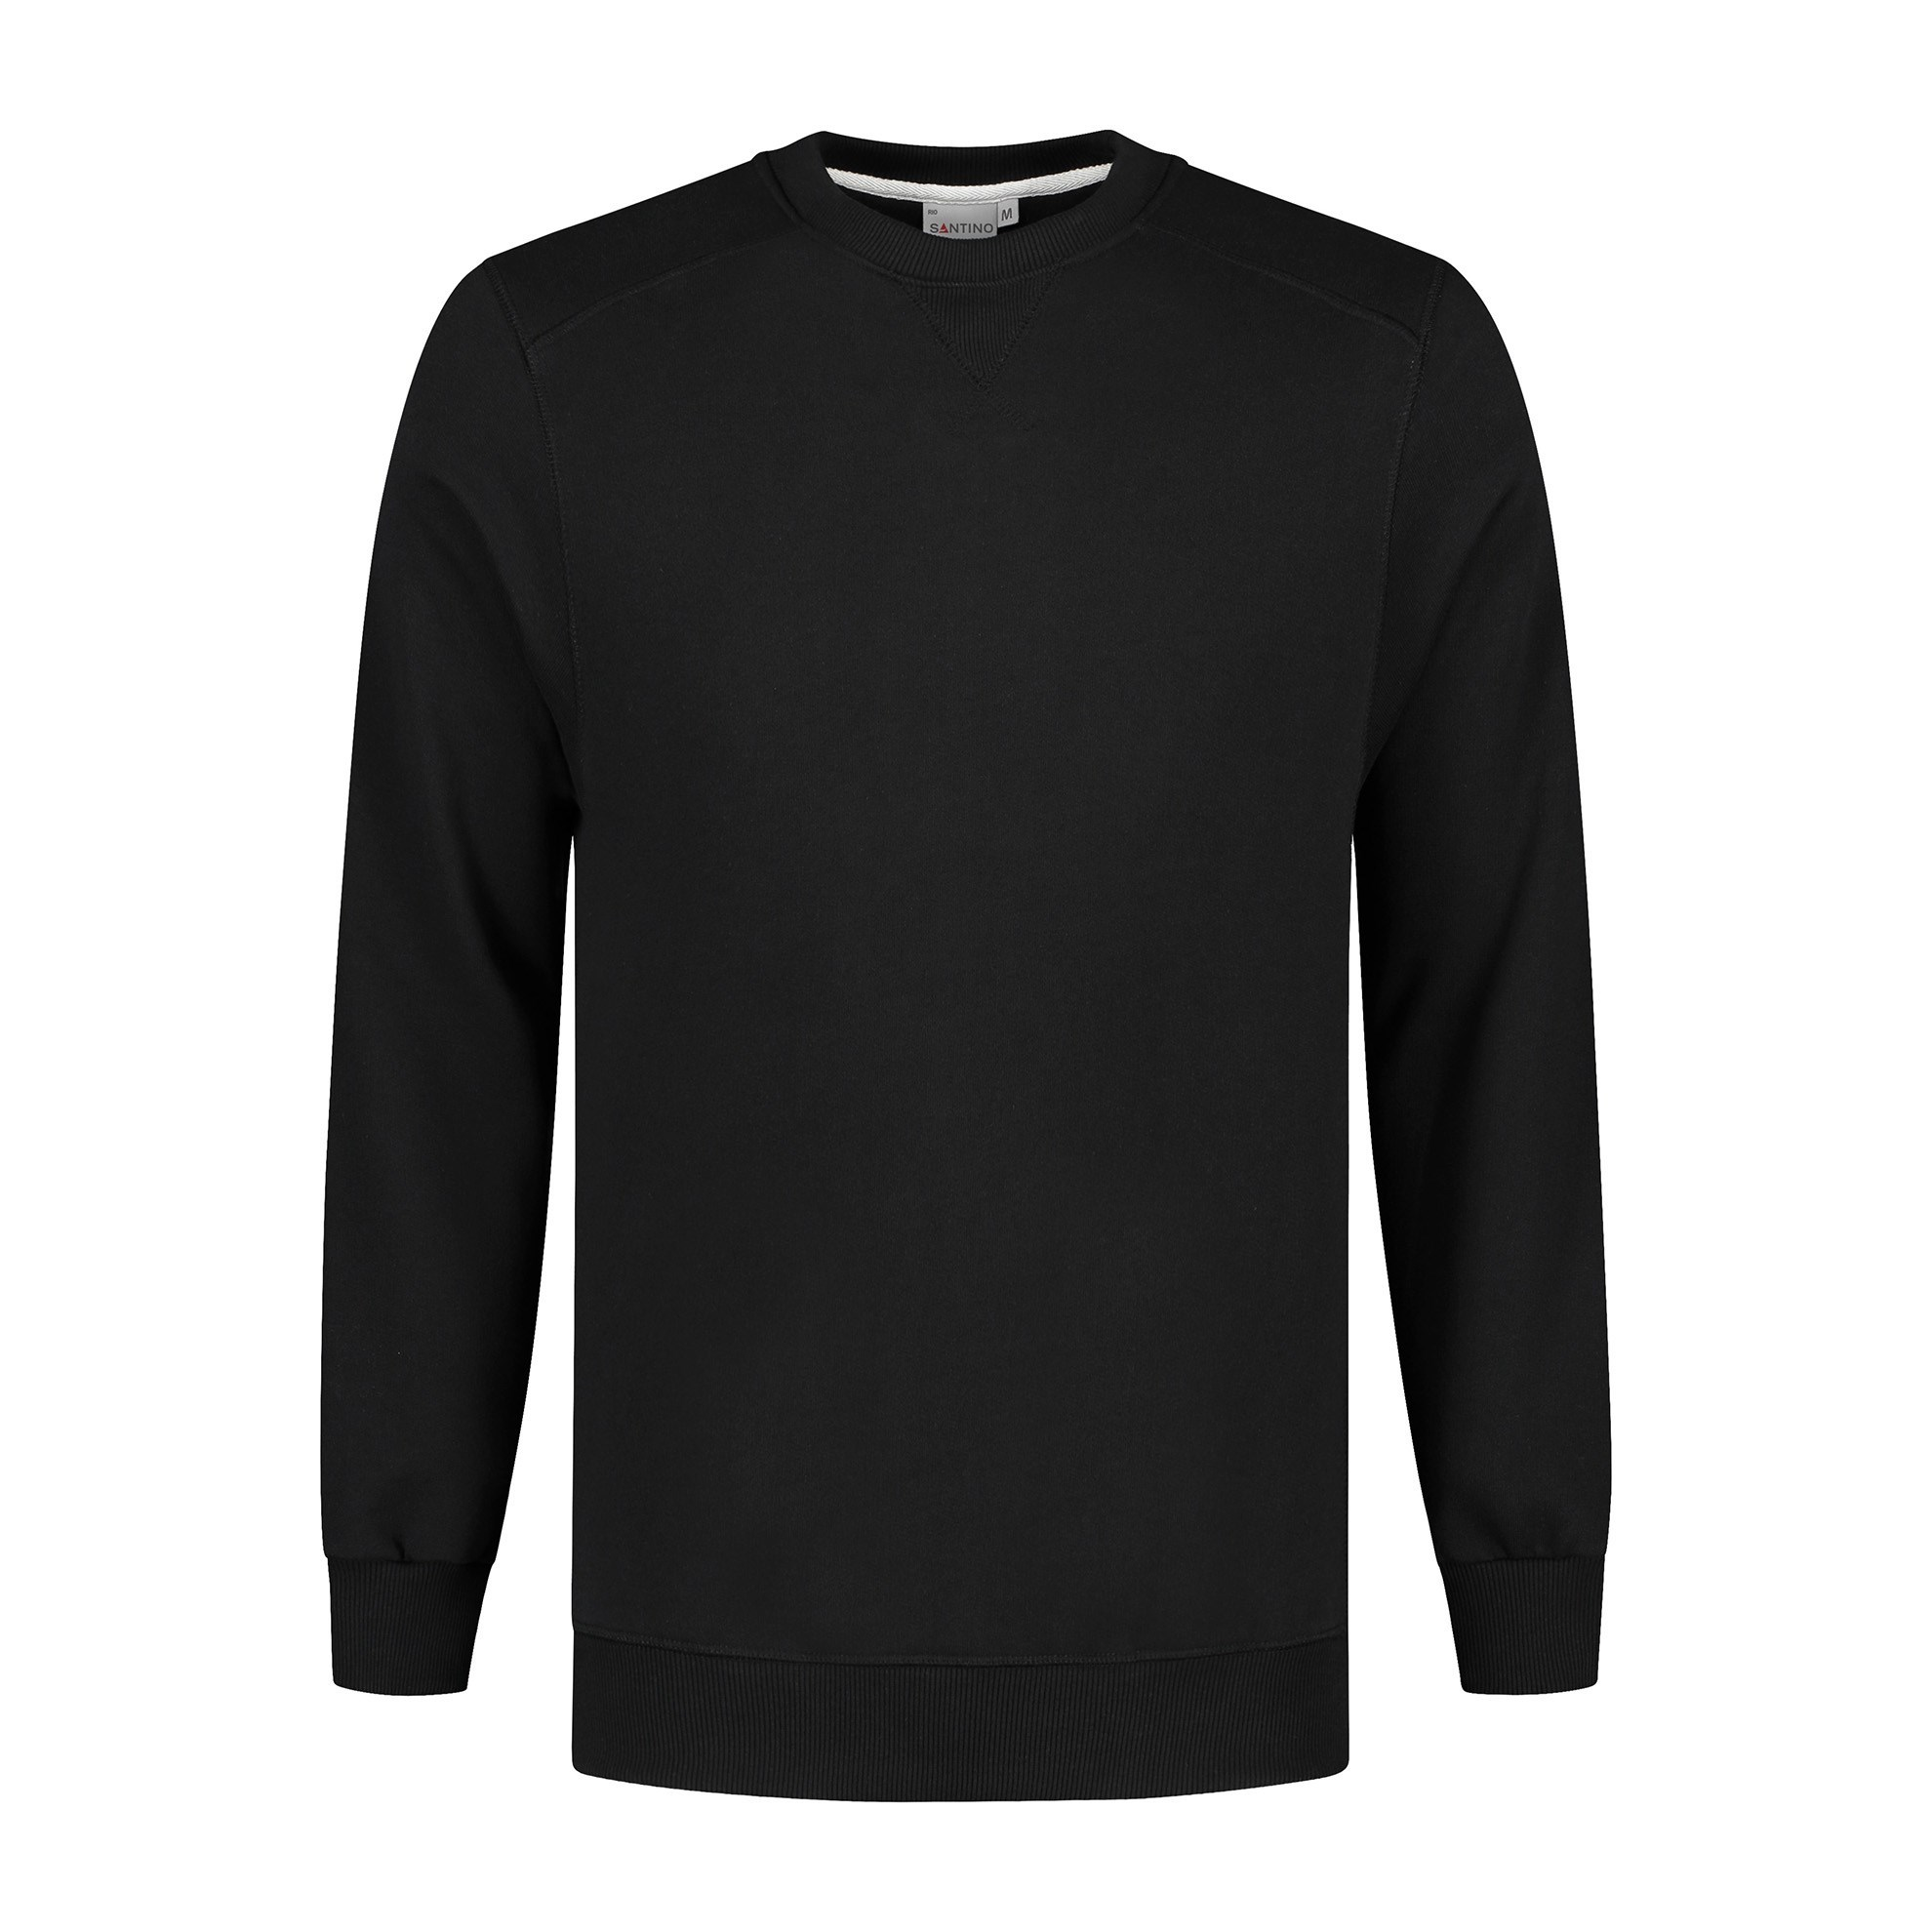 SANTINO Sweater Rio Black 3XL